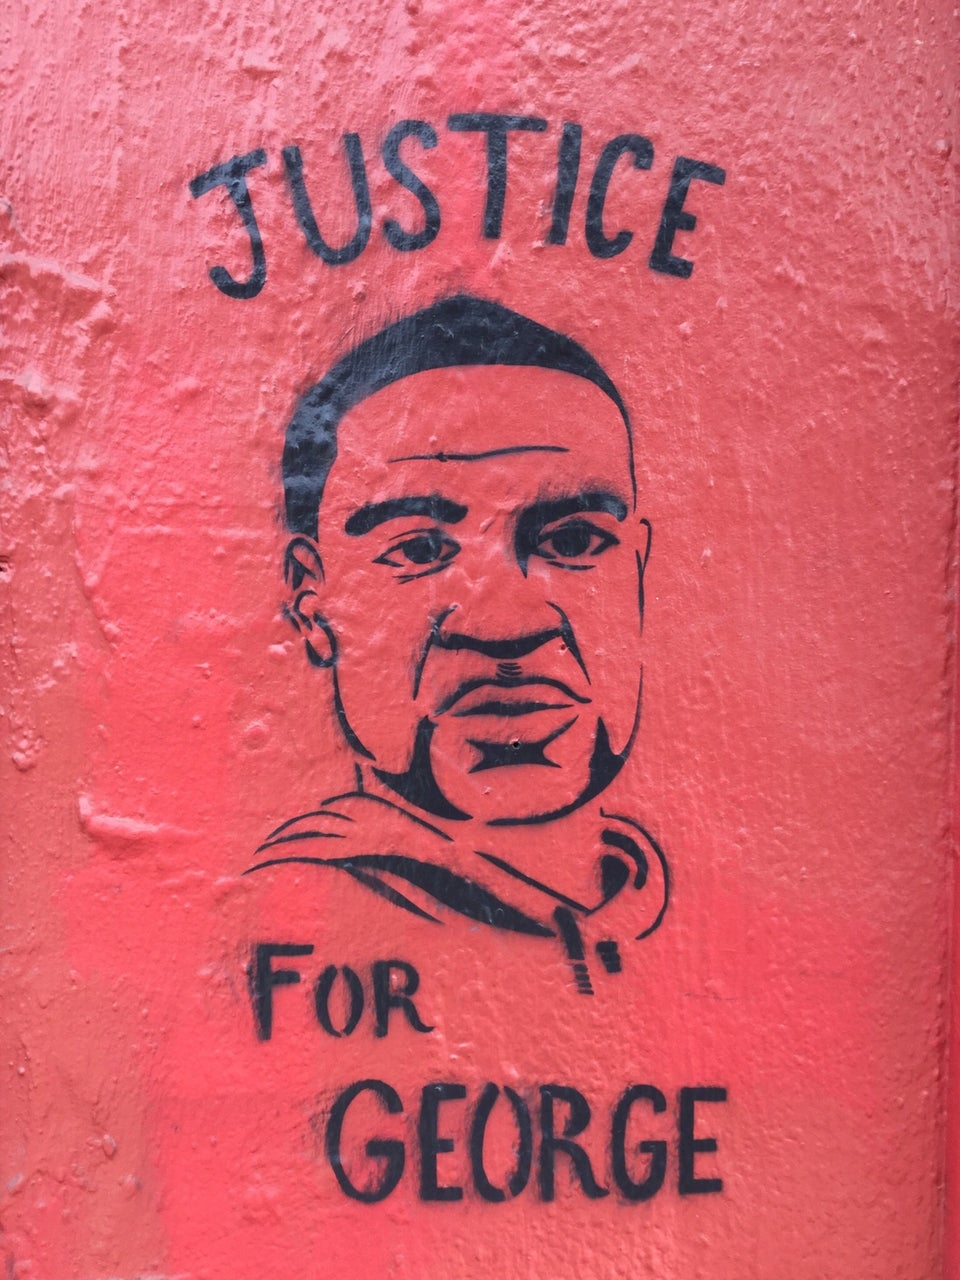 Stencil street art of George Floyd on a red wall with the word JUSTICE above his head, and FOR GEORGE below.